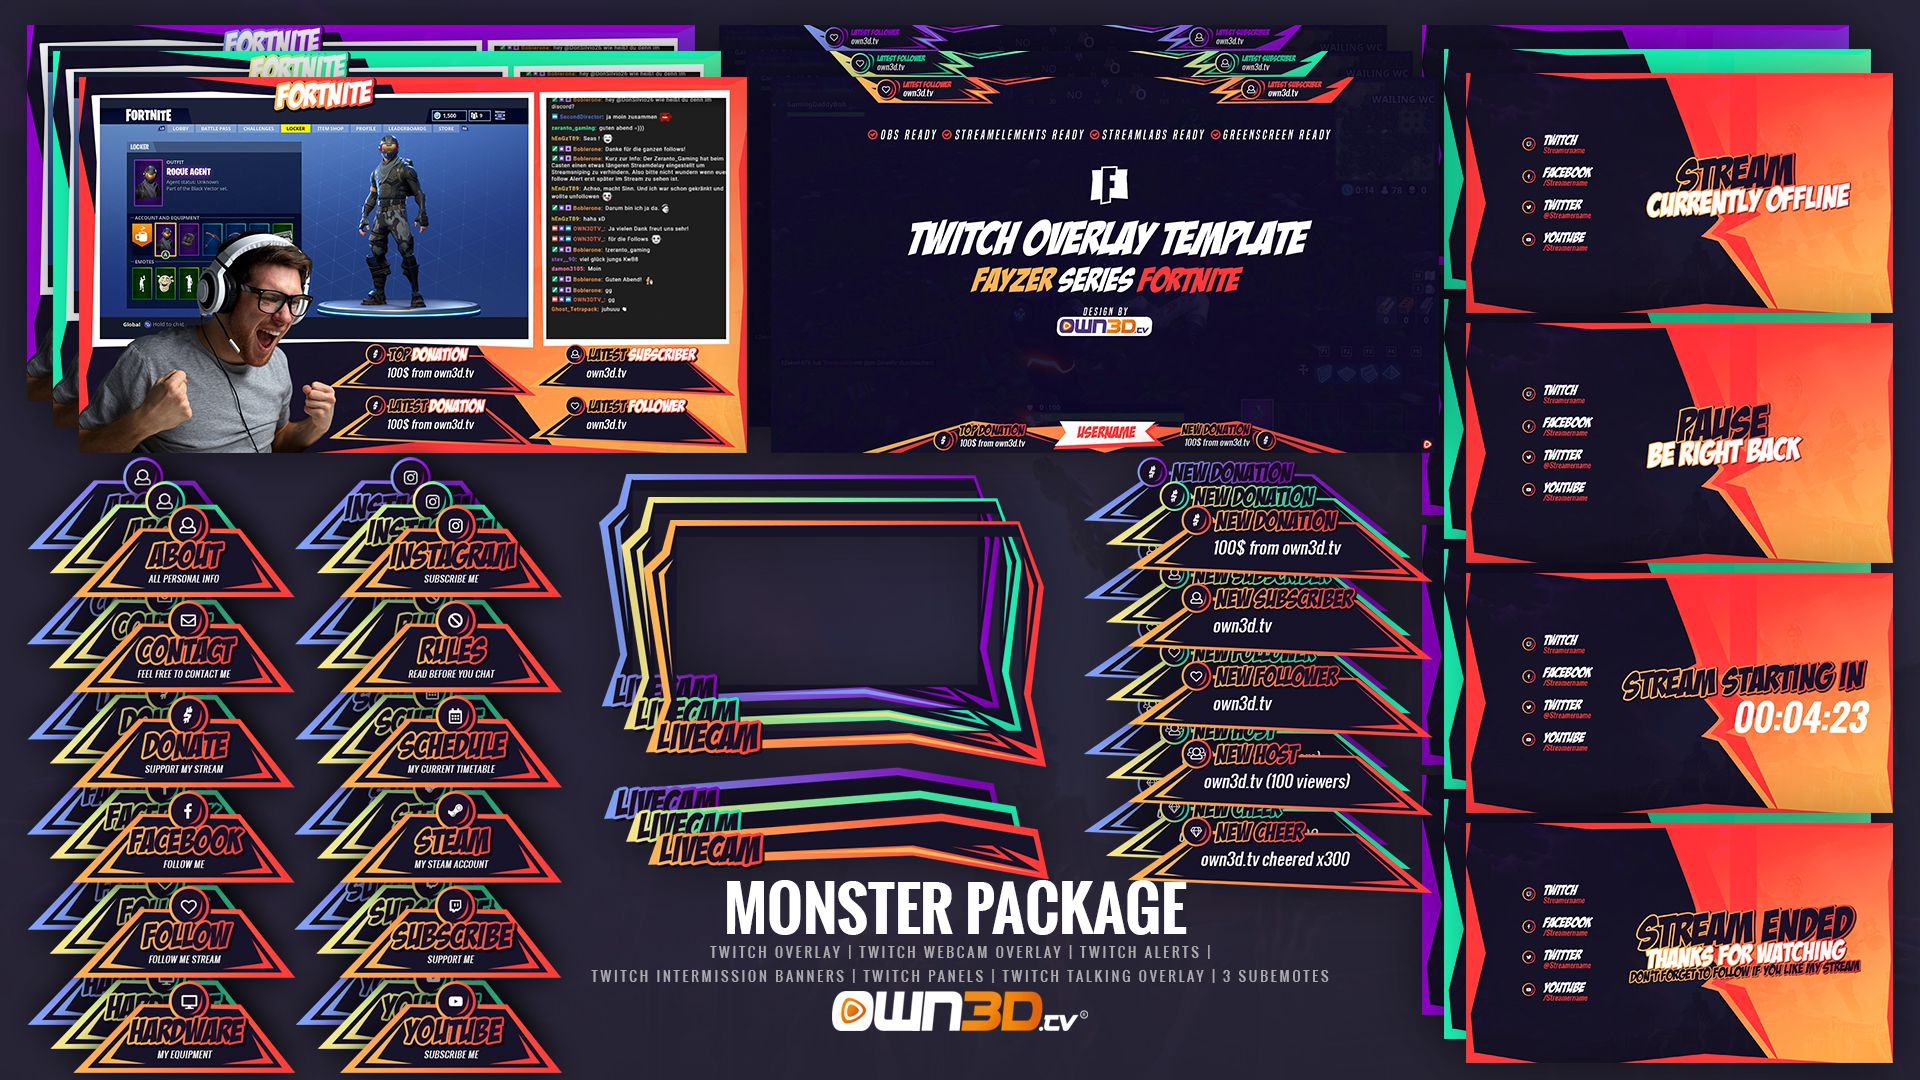 fayzer-series-ALL-twitch-overlay-package-03-monster.jpg